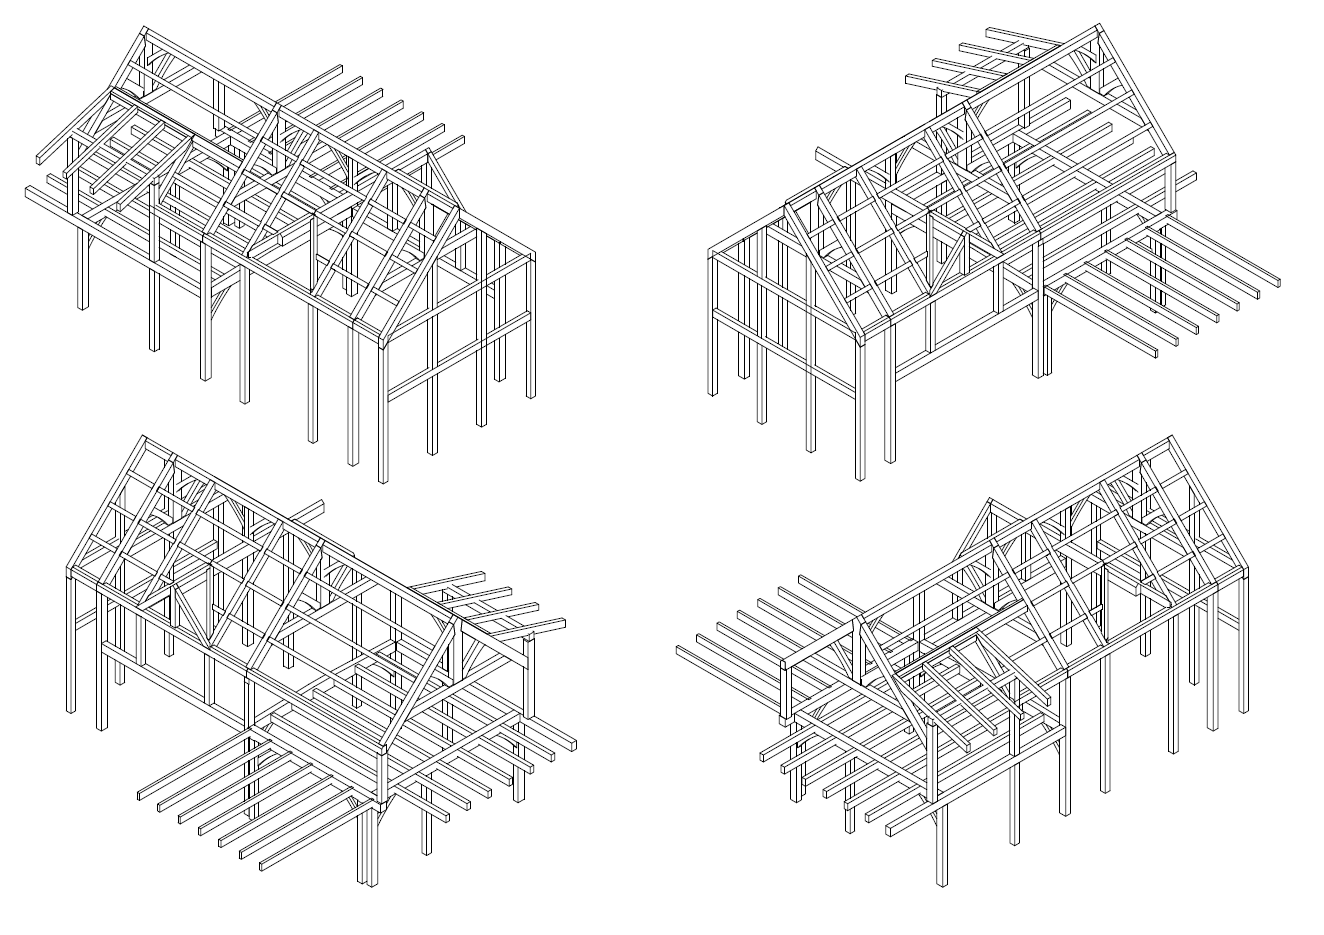 Timber Frame Isometric Construction Plans | Construction drawings ...